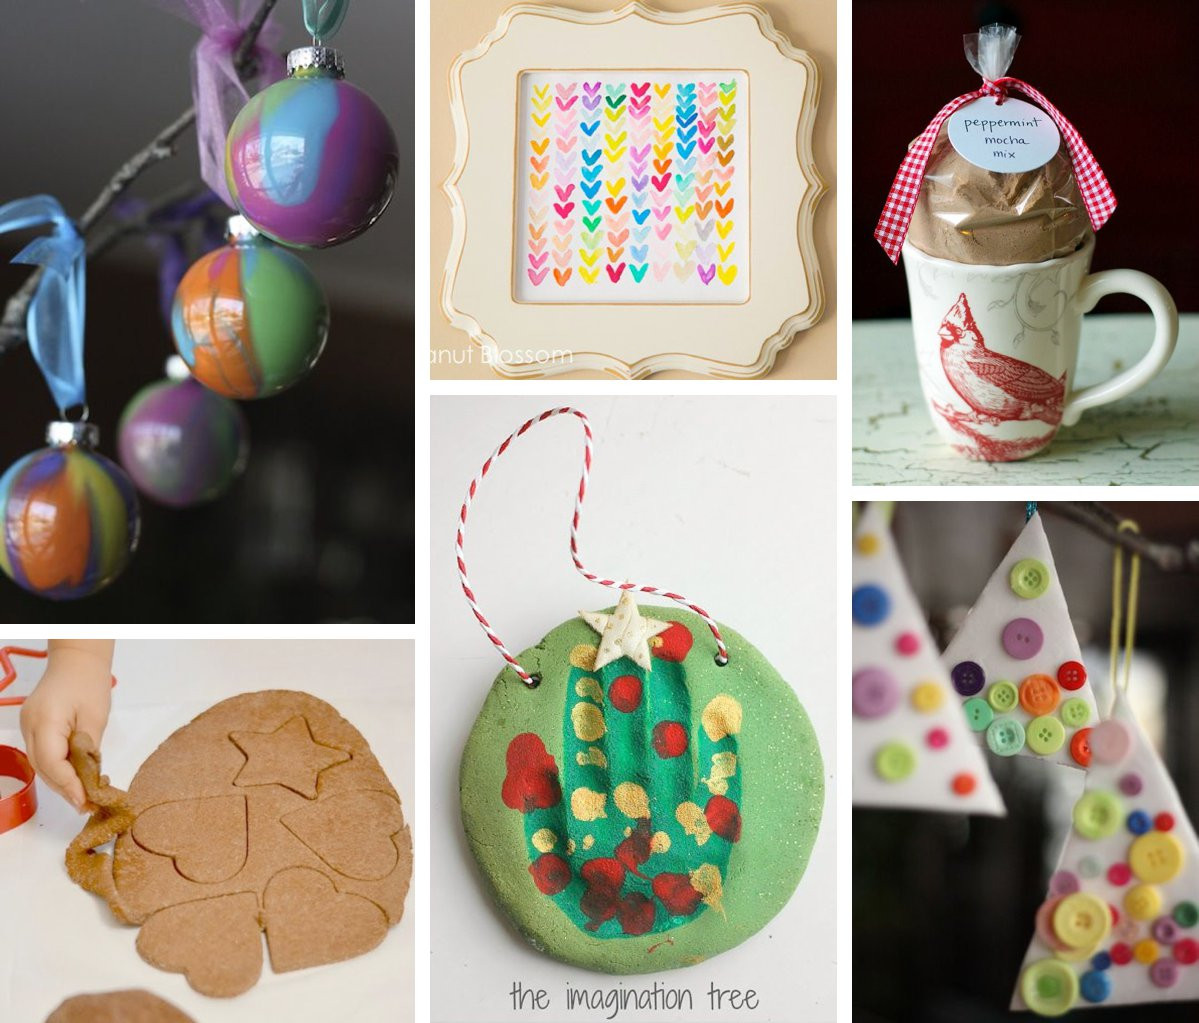 Best ideas about Handmade Christmas Gifts For Kids . Save or Pin 10 DIY Holiday Gifts Kids Can Help Make Now.